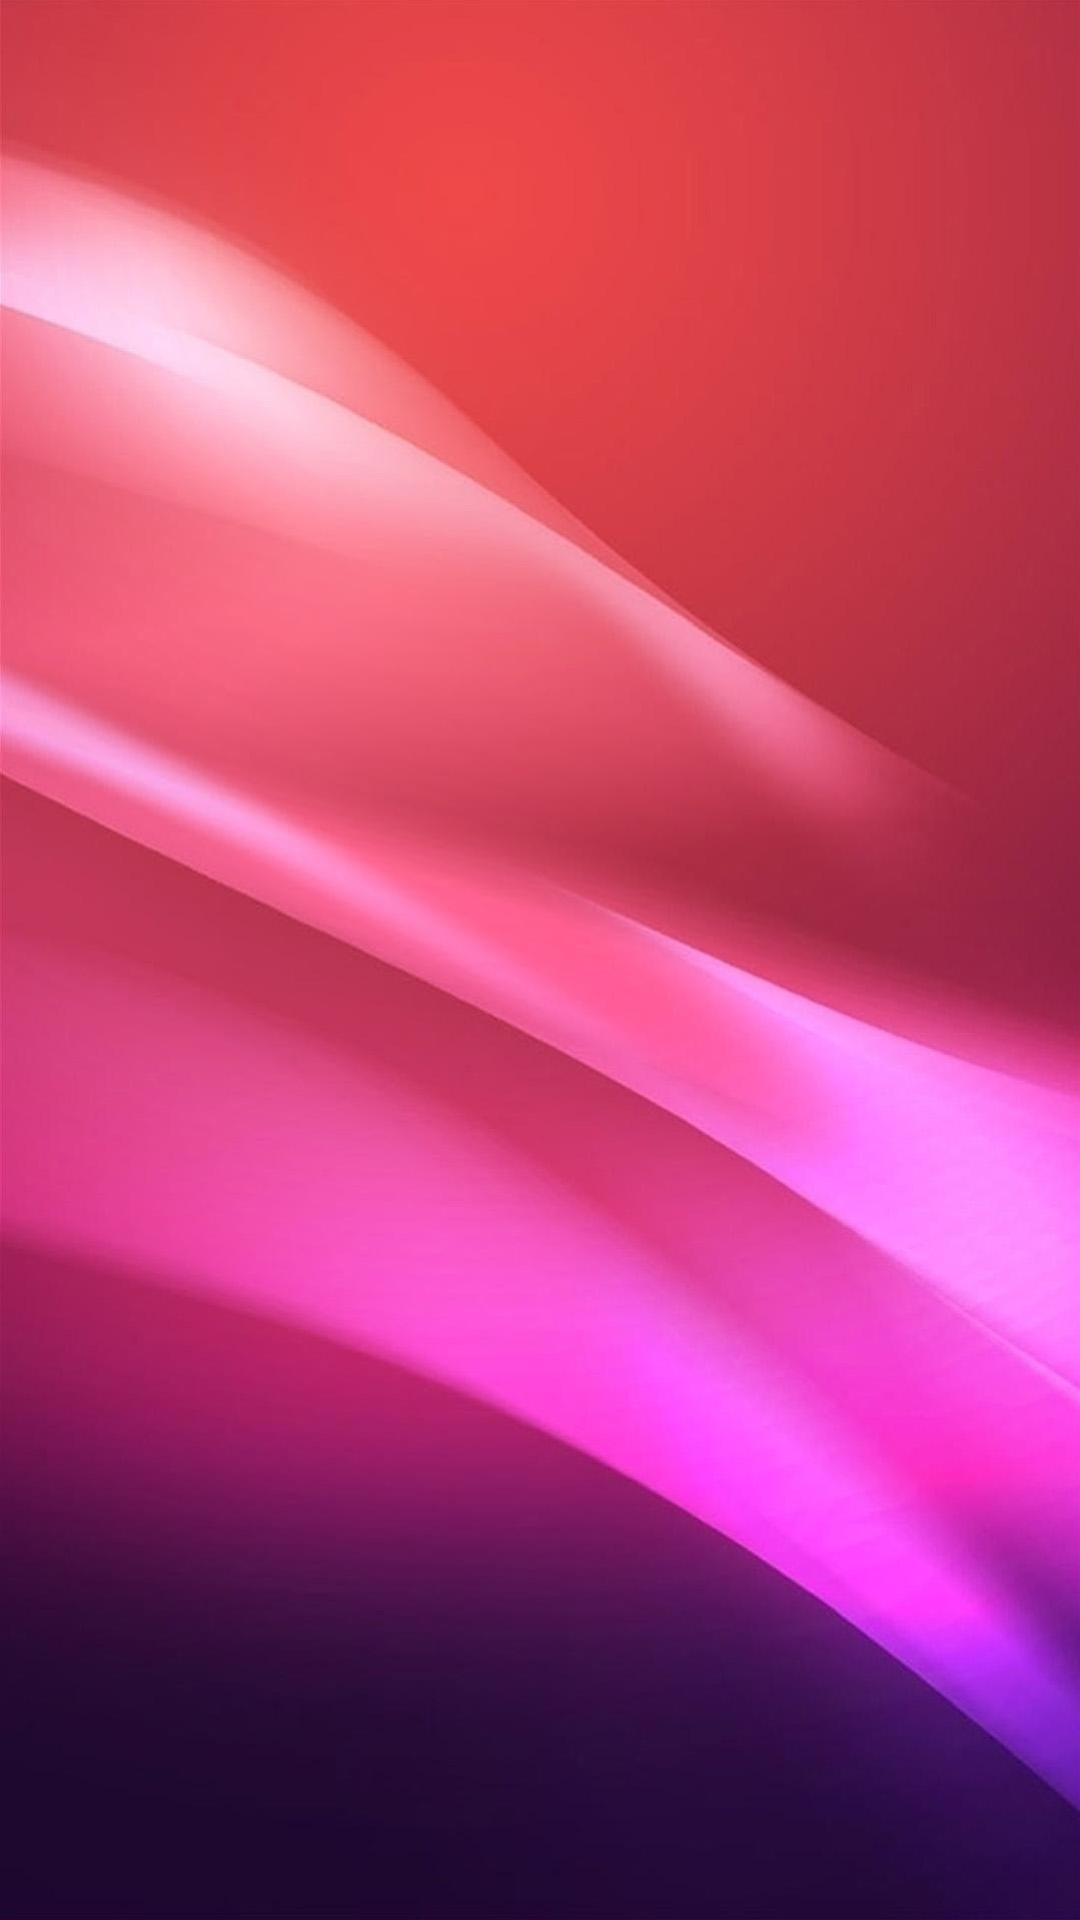 galaxy s6 wallpaper for iphone 6